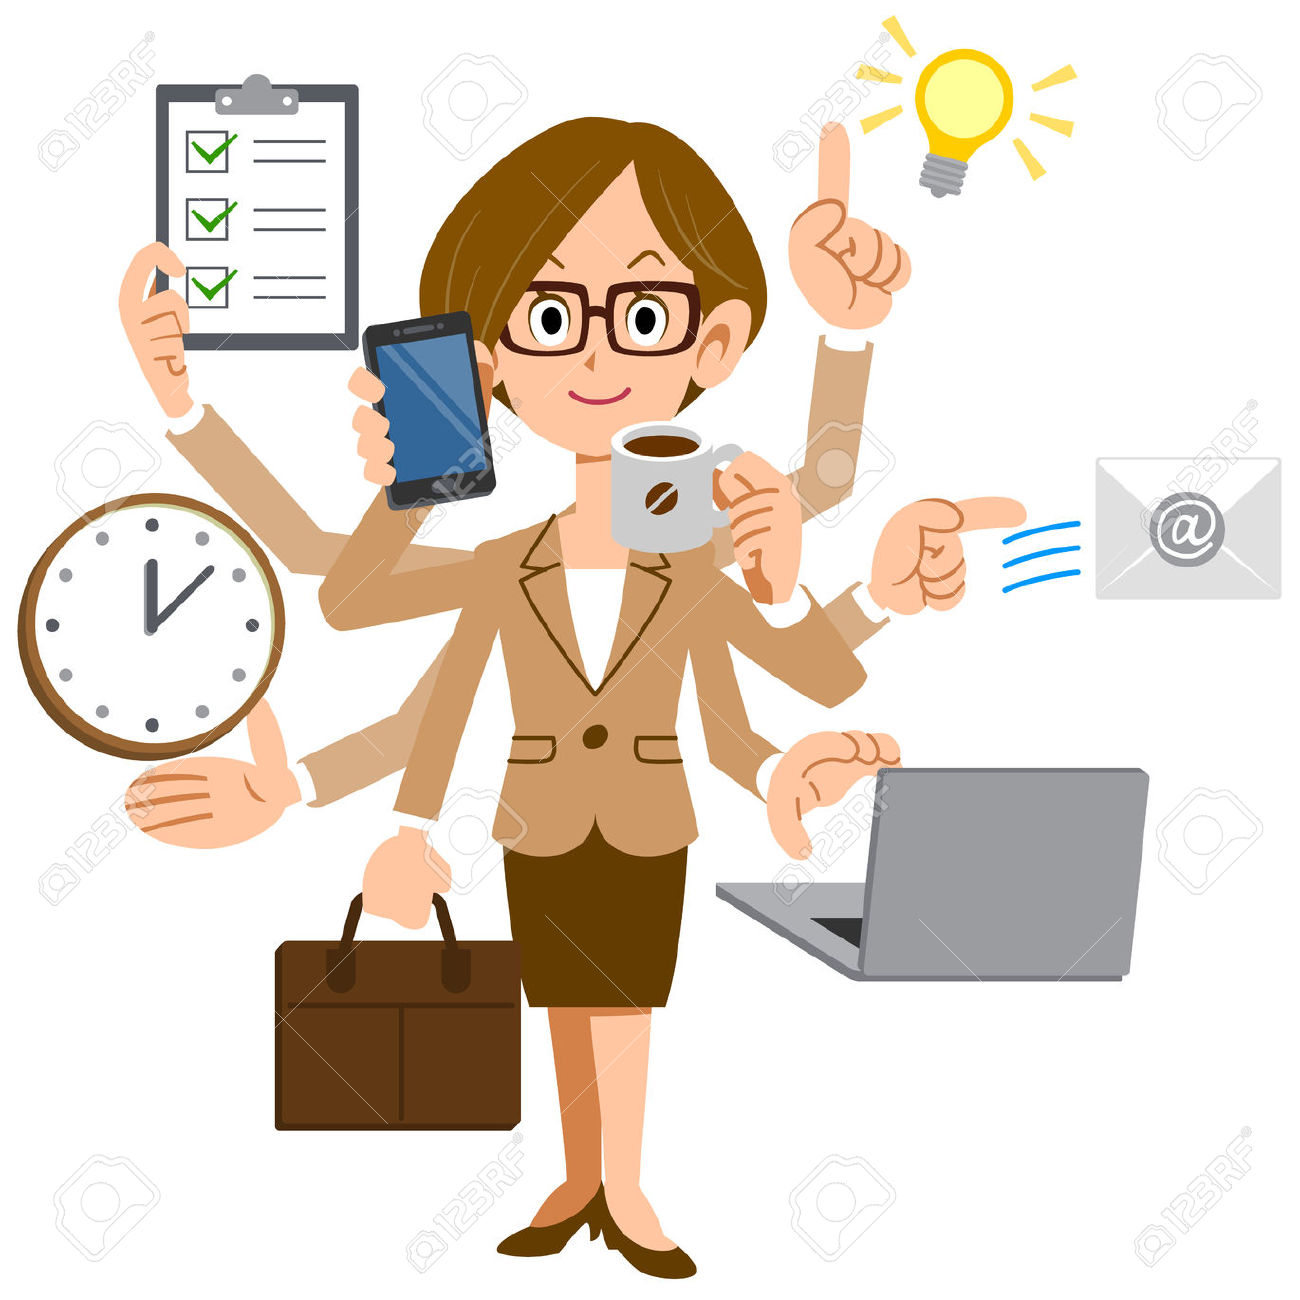 Working clipart busy schedule. Secretary cliparts free download